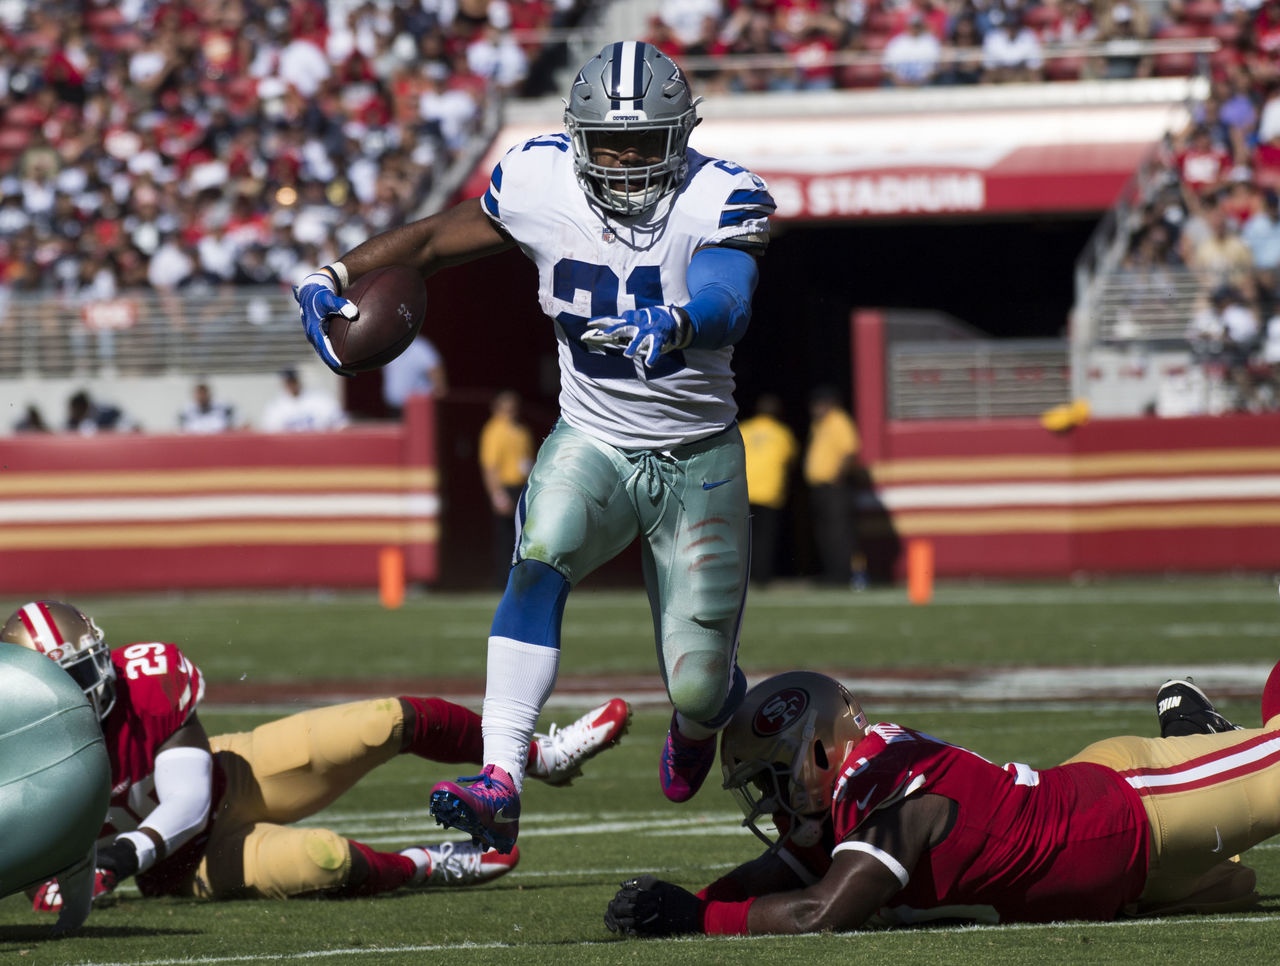 Cropped 2017 10 22t214122z 133599877 nocid rtrmadp 3 nfl dallas cowboys at san francisco 49ers